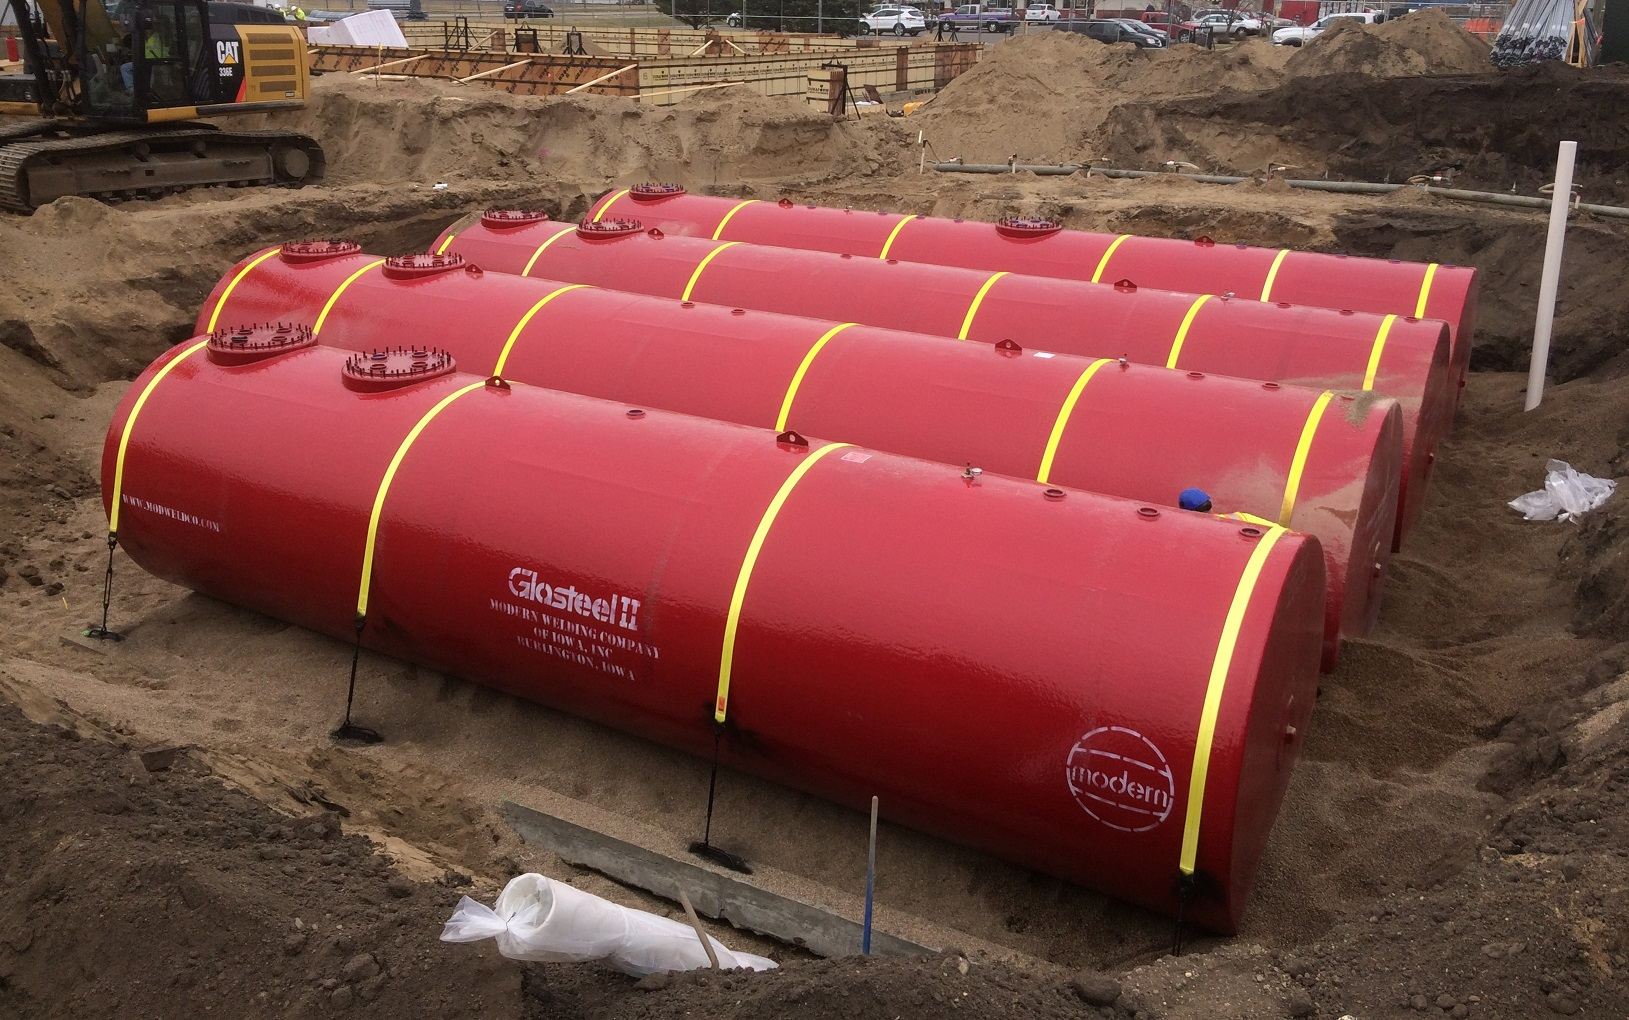 Modern Welding Glasteel II fuel underground storage tanks